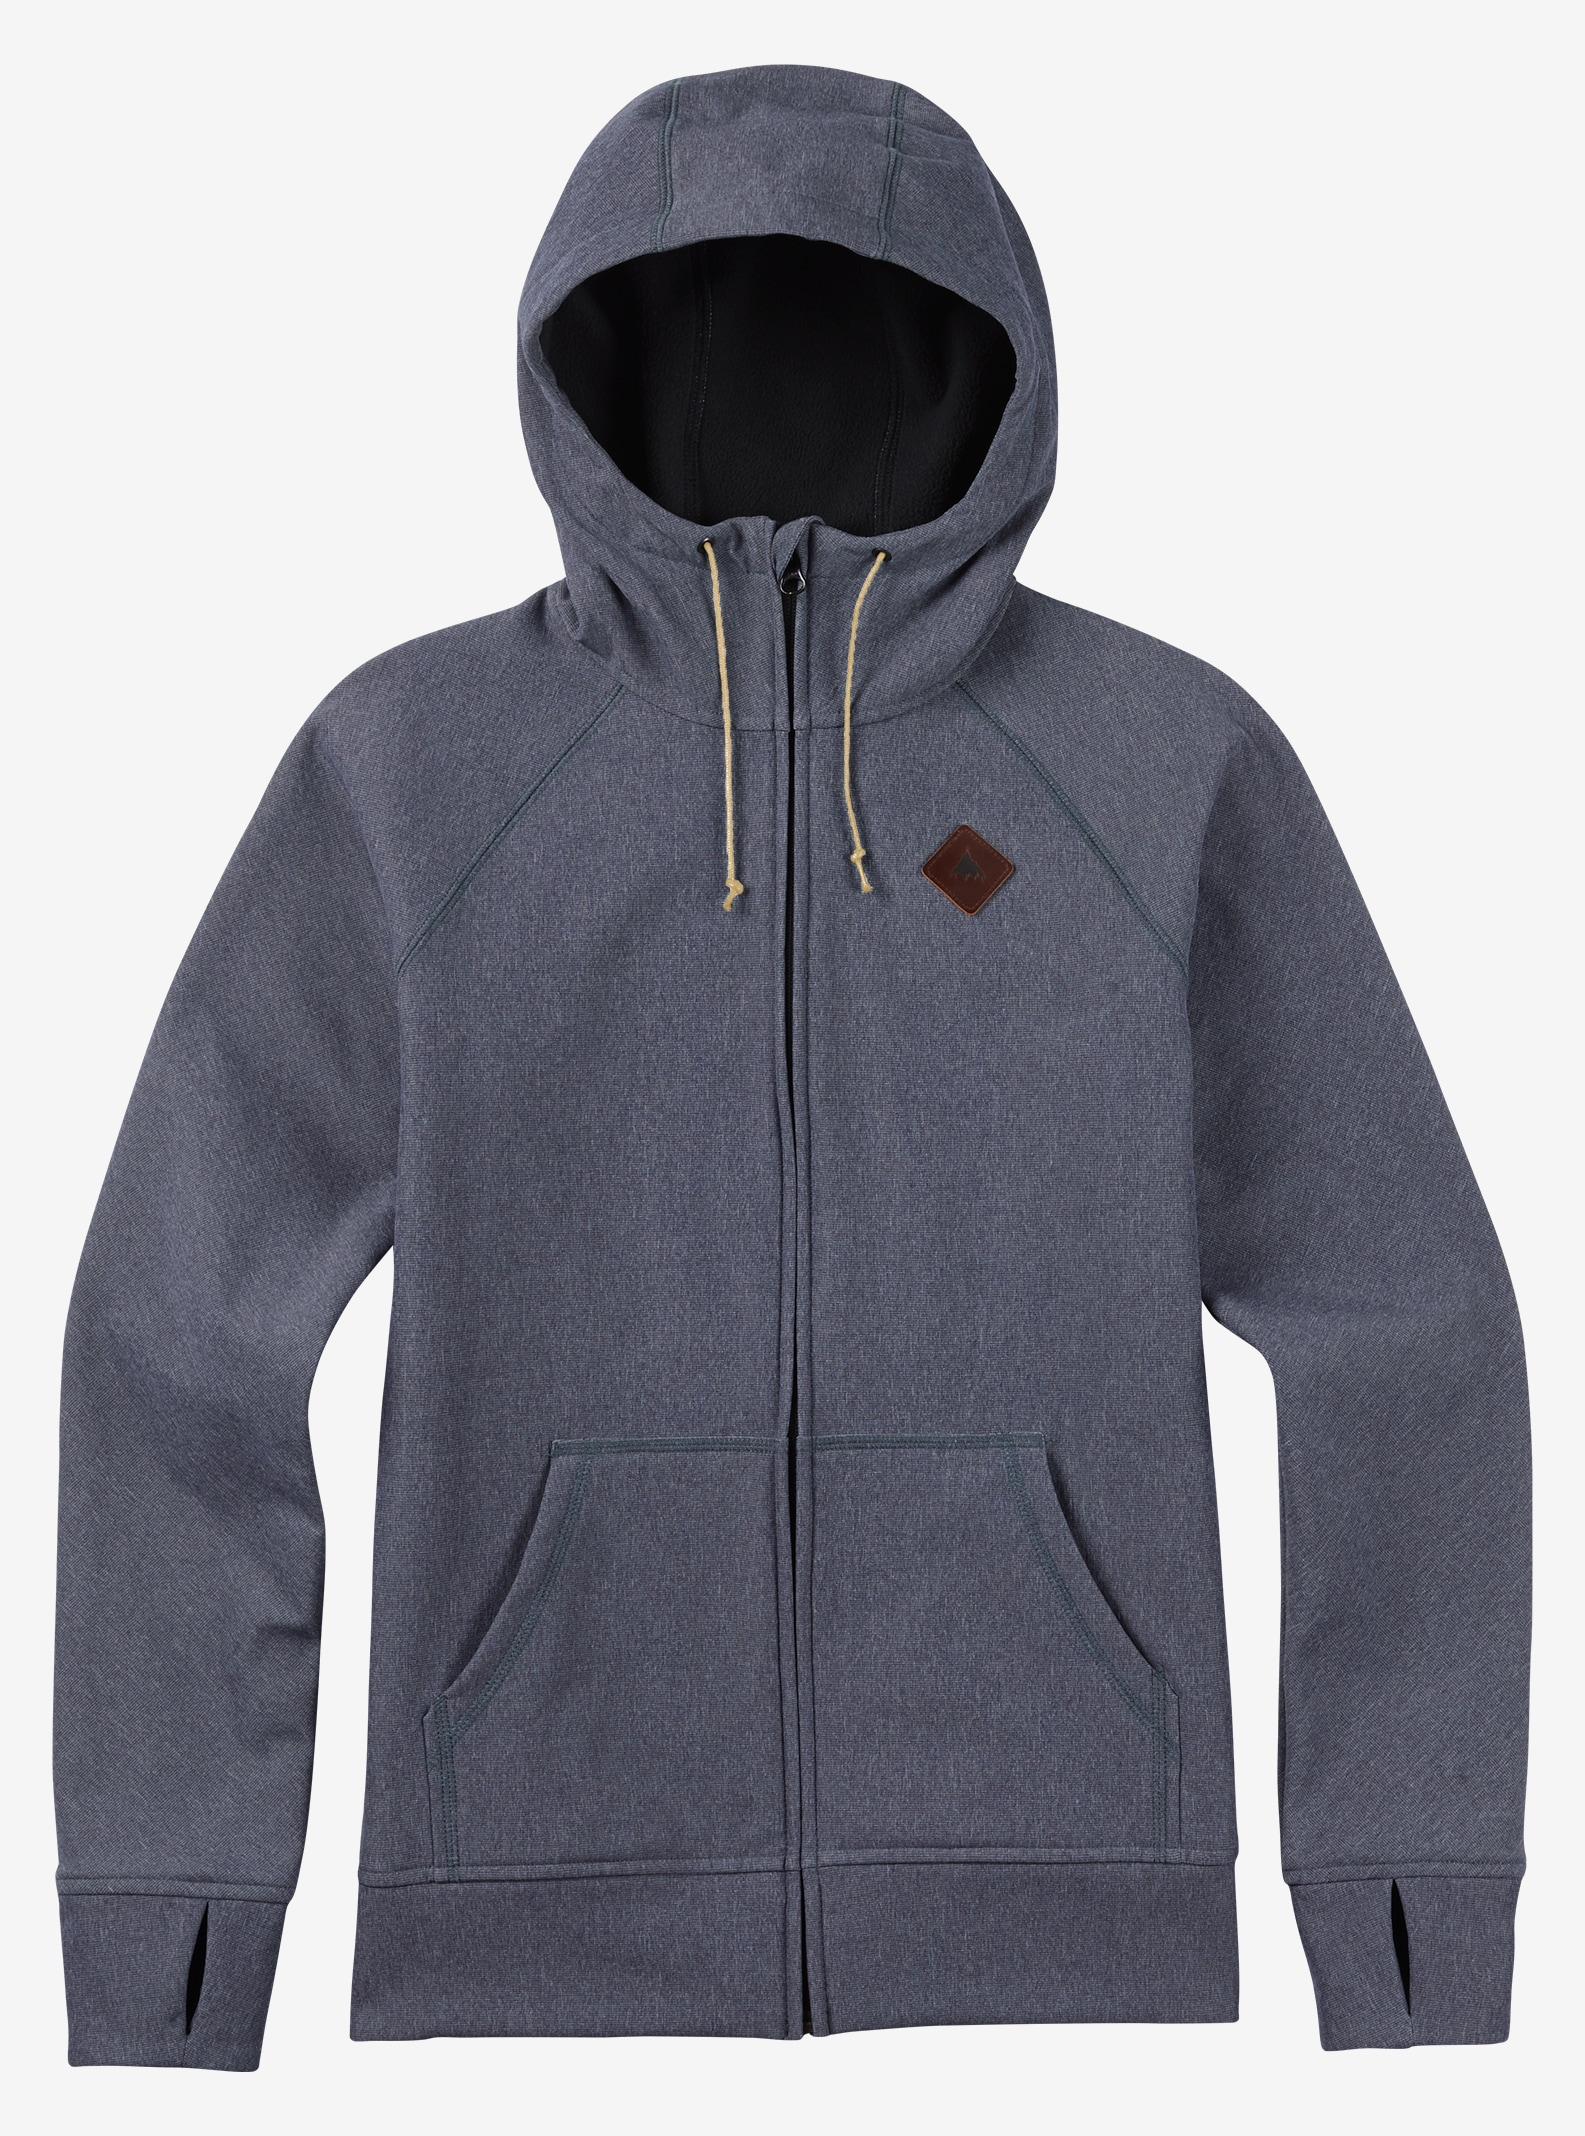 Burton Scoop Hoodie angezeigt in Denim Heather